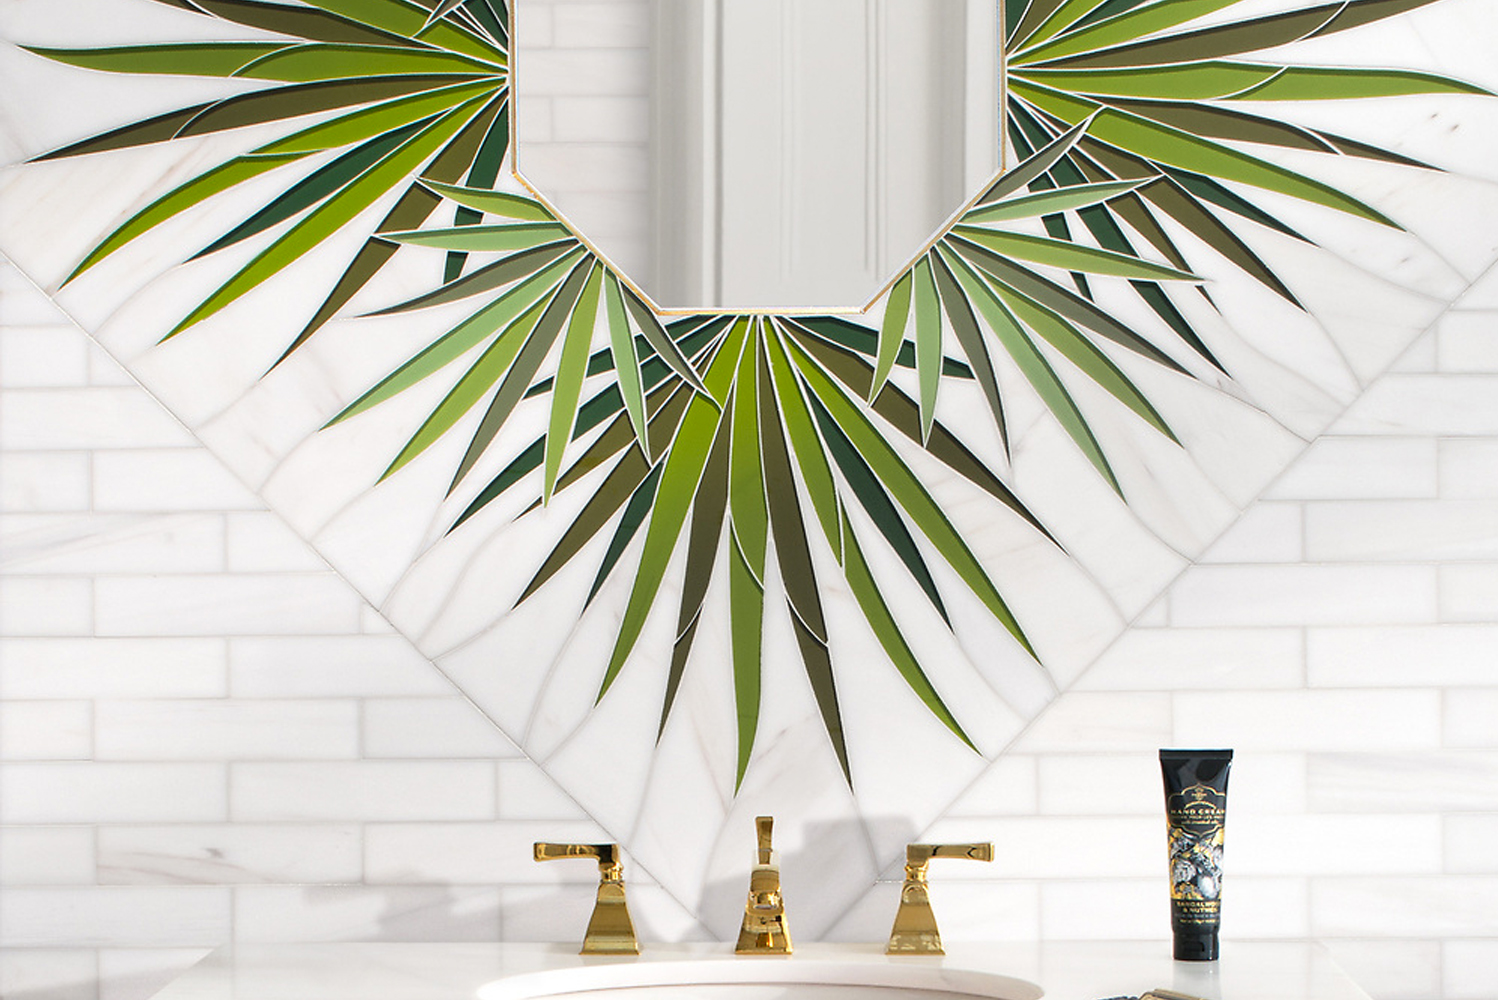 The collection includes Wings, a modern take on palmetto trees typically found in the American South.